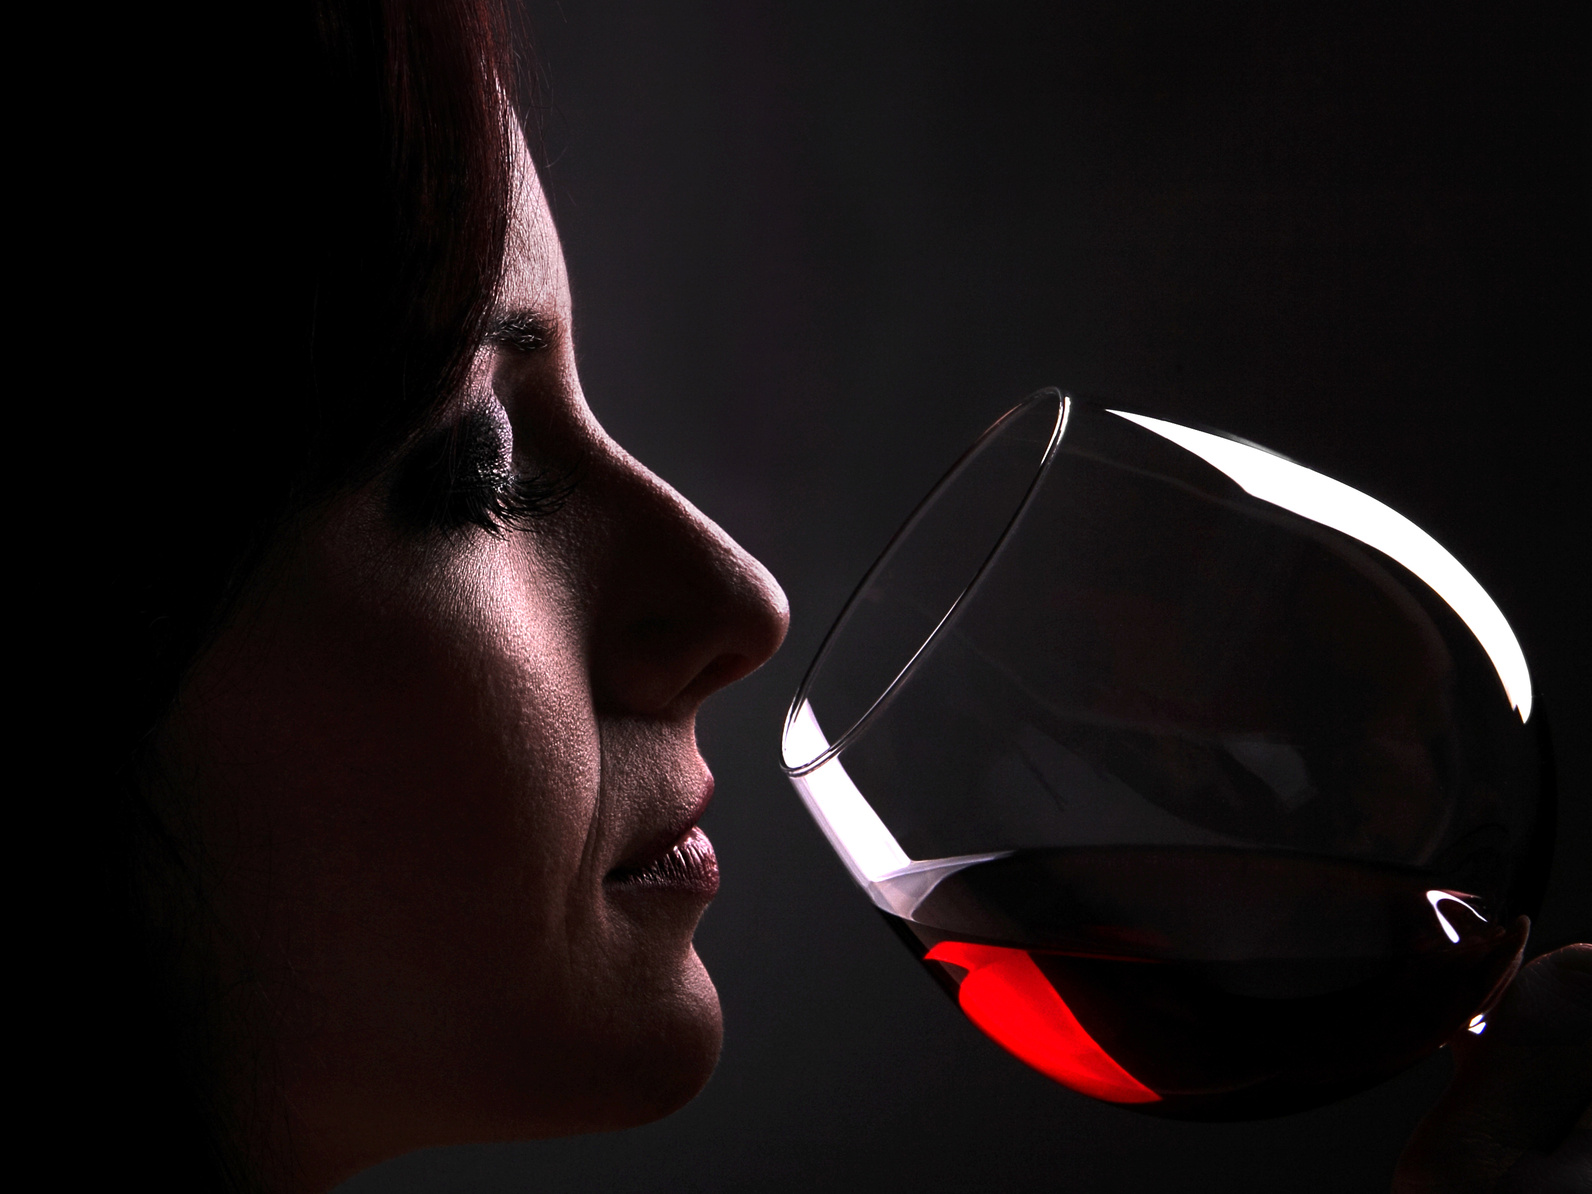 Smelling red wine